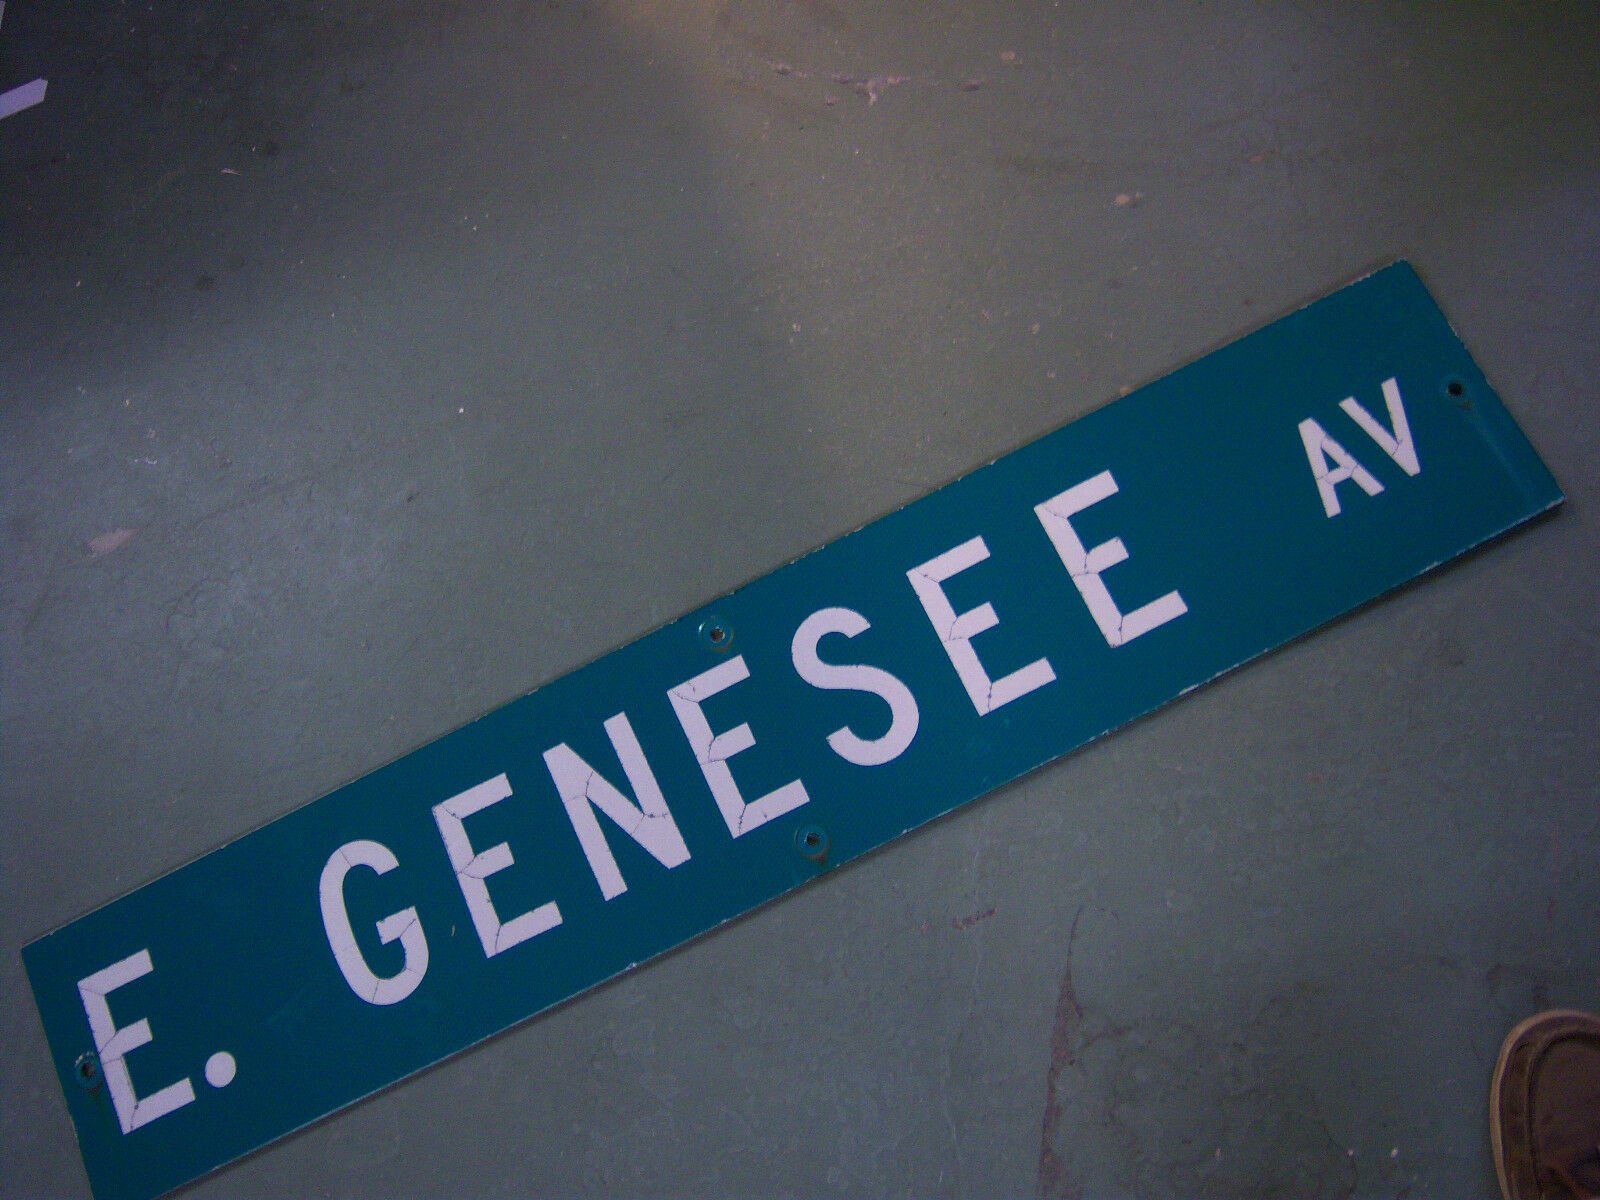 LARGE Vintage  E. GENESEE AV STREET SIGN 48 X 9 WHT LETTERING ON GRN BACKGROUND